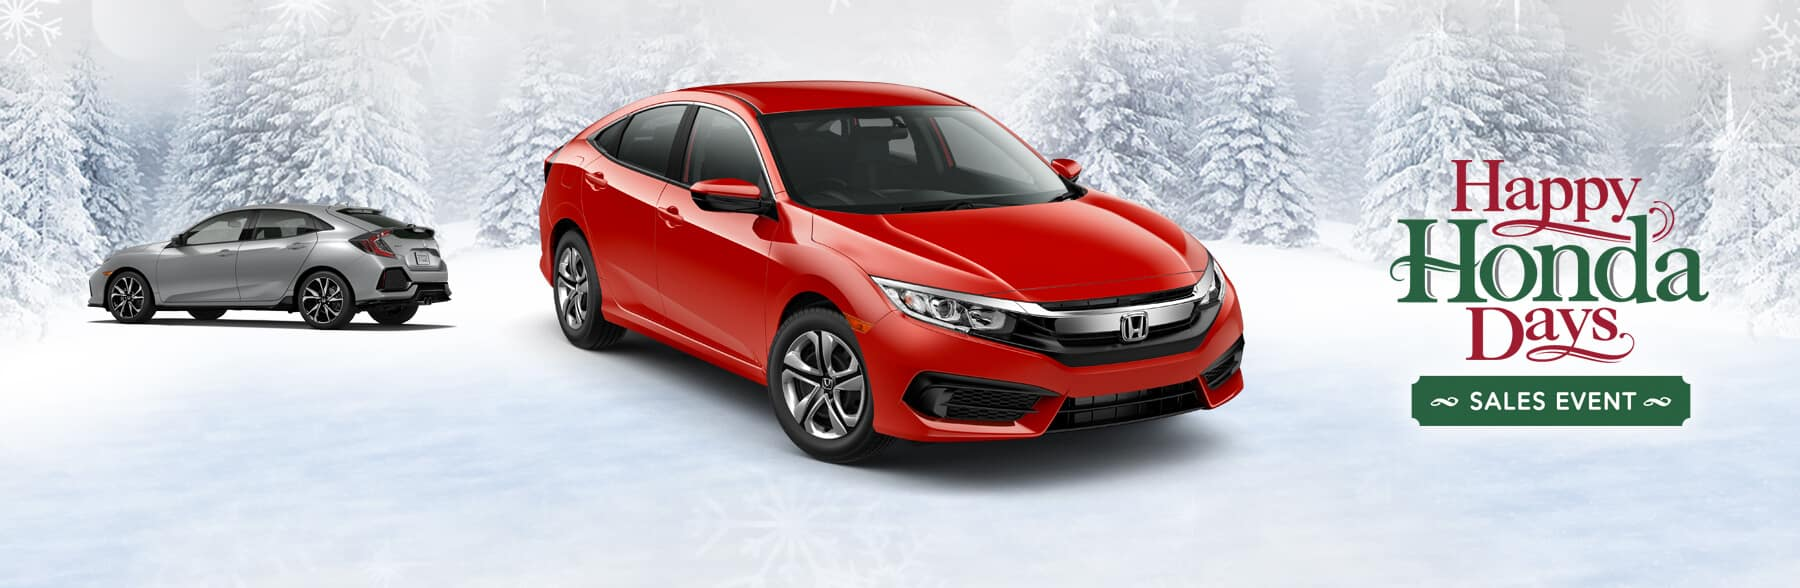 Happy Honda Days Civic Banner